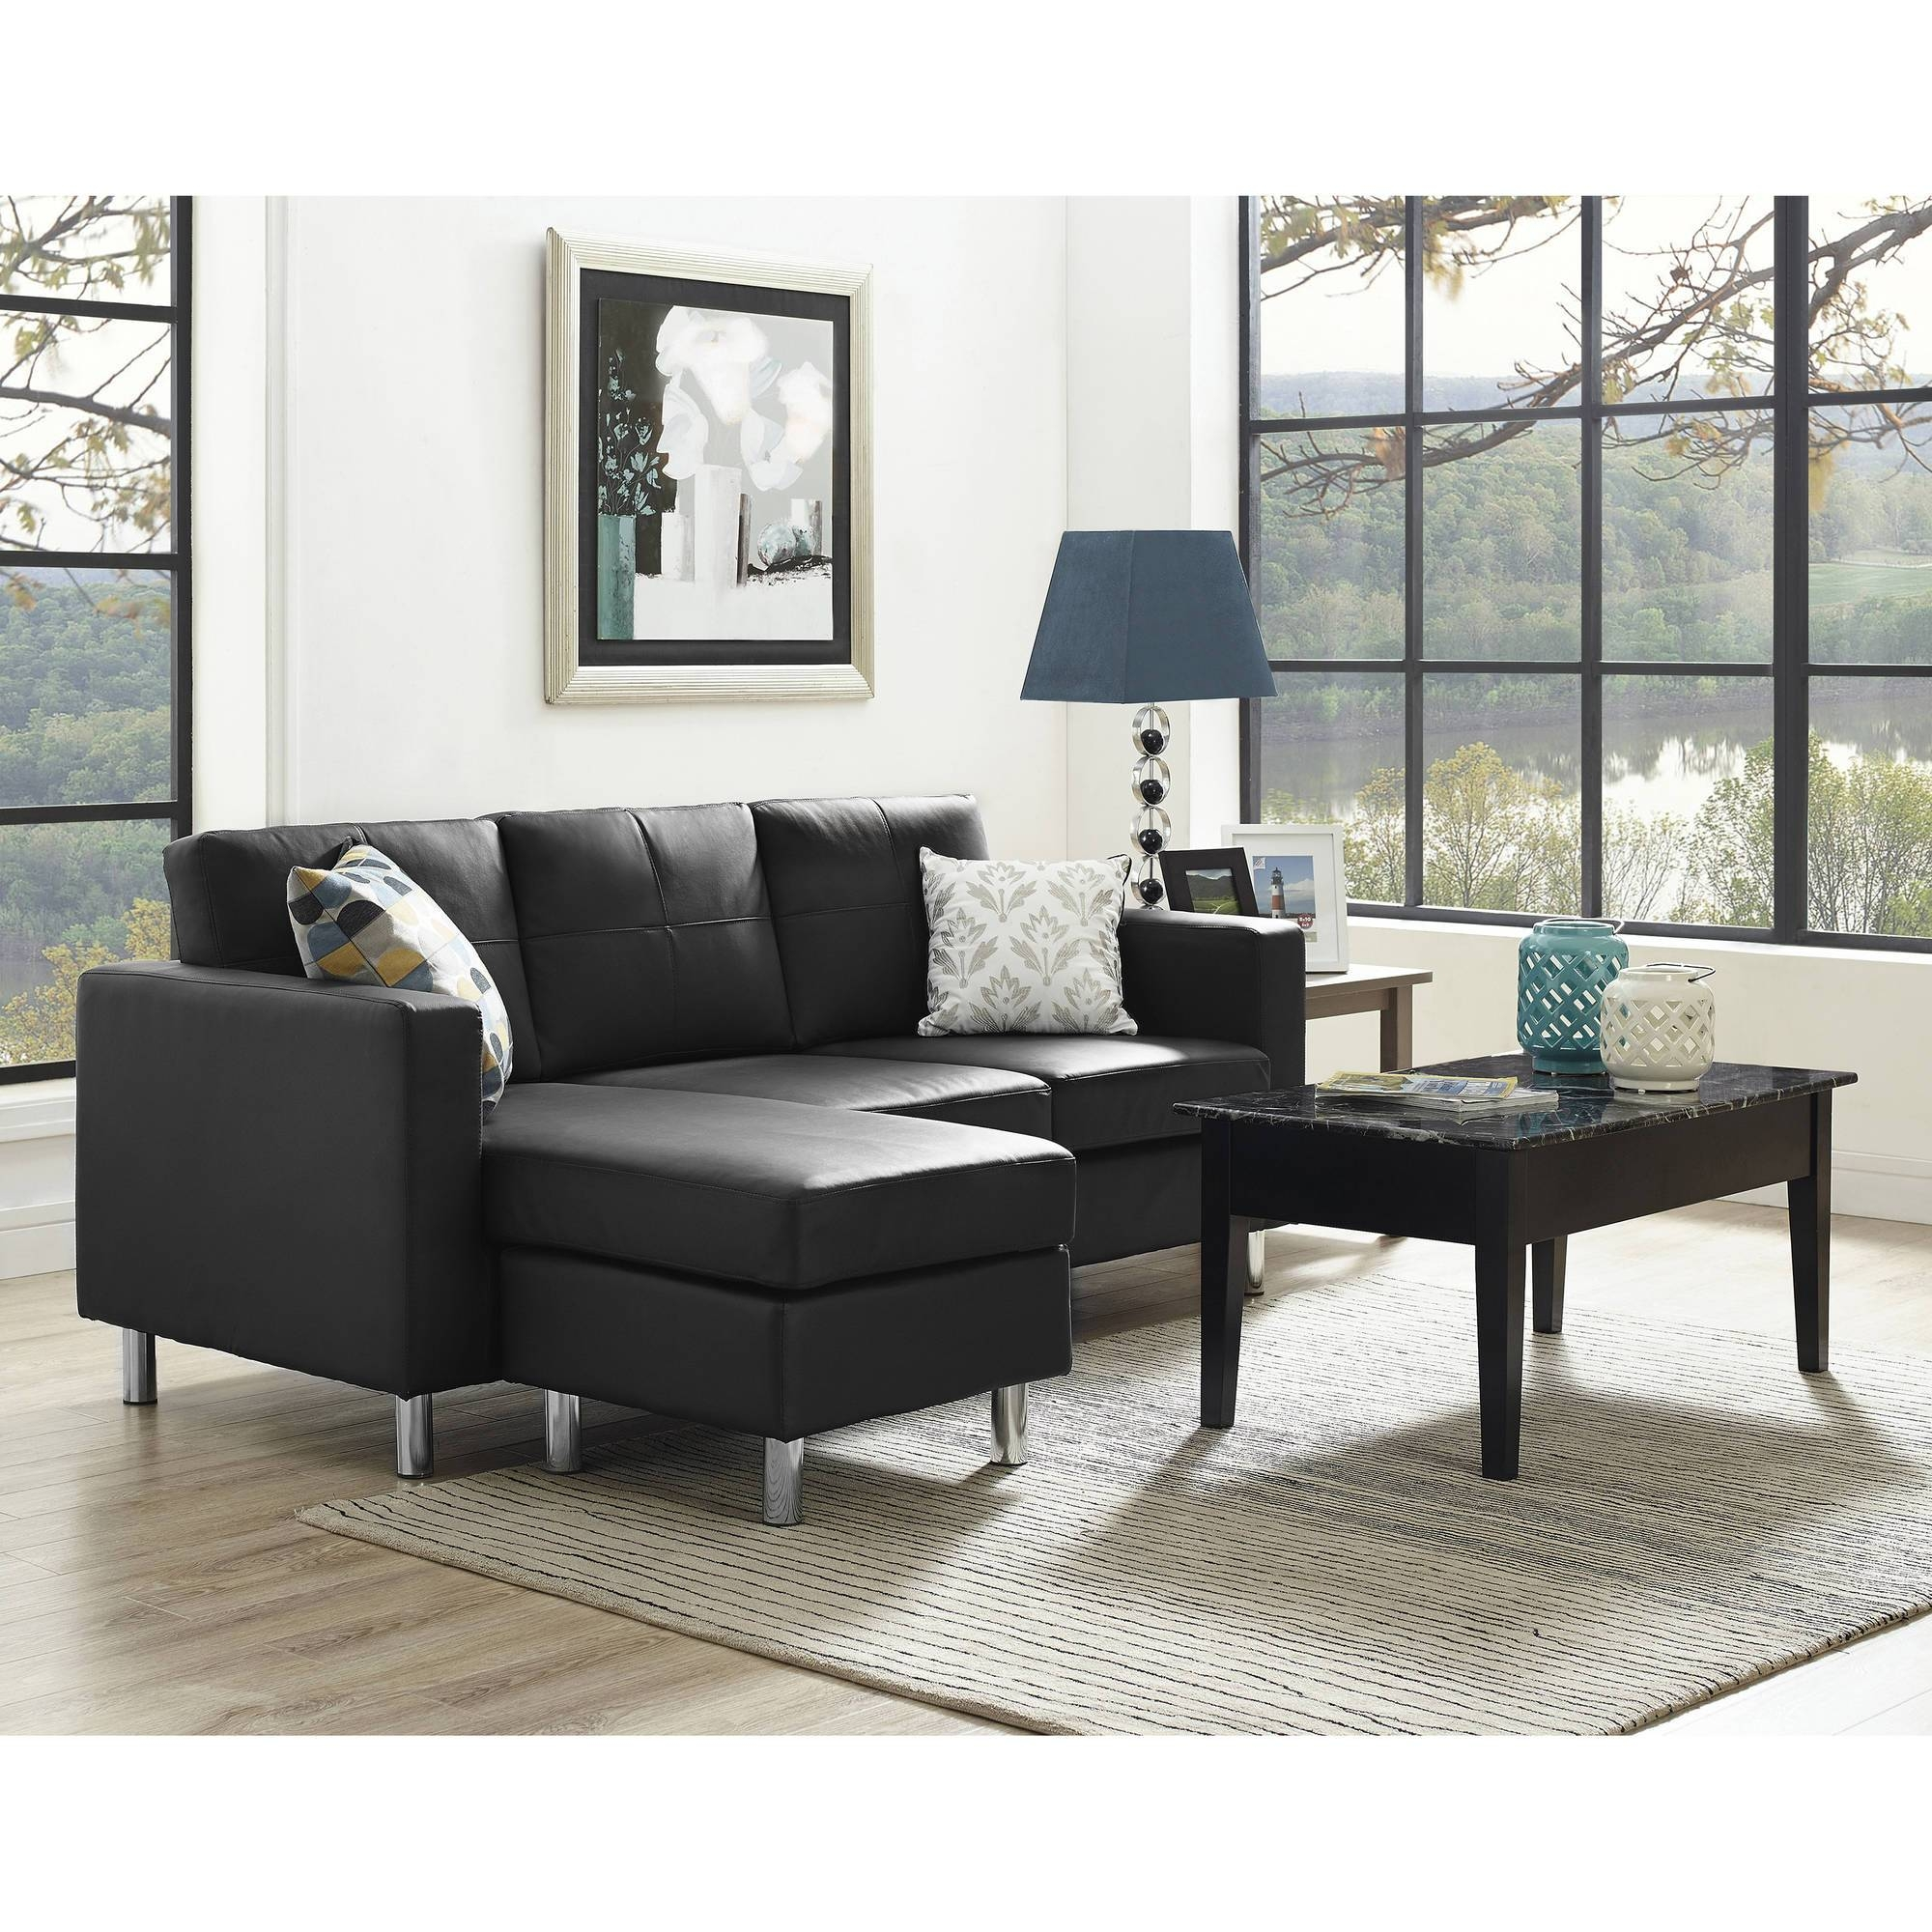 Dorel Living Small Spaces Configurable Sectional Sofa, Multiple inside 10 Piece Sectional Sofa (Image 9 of 30)